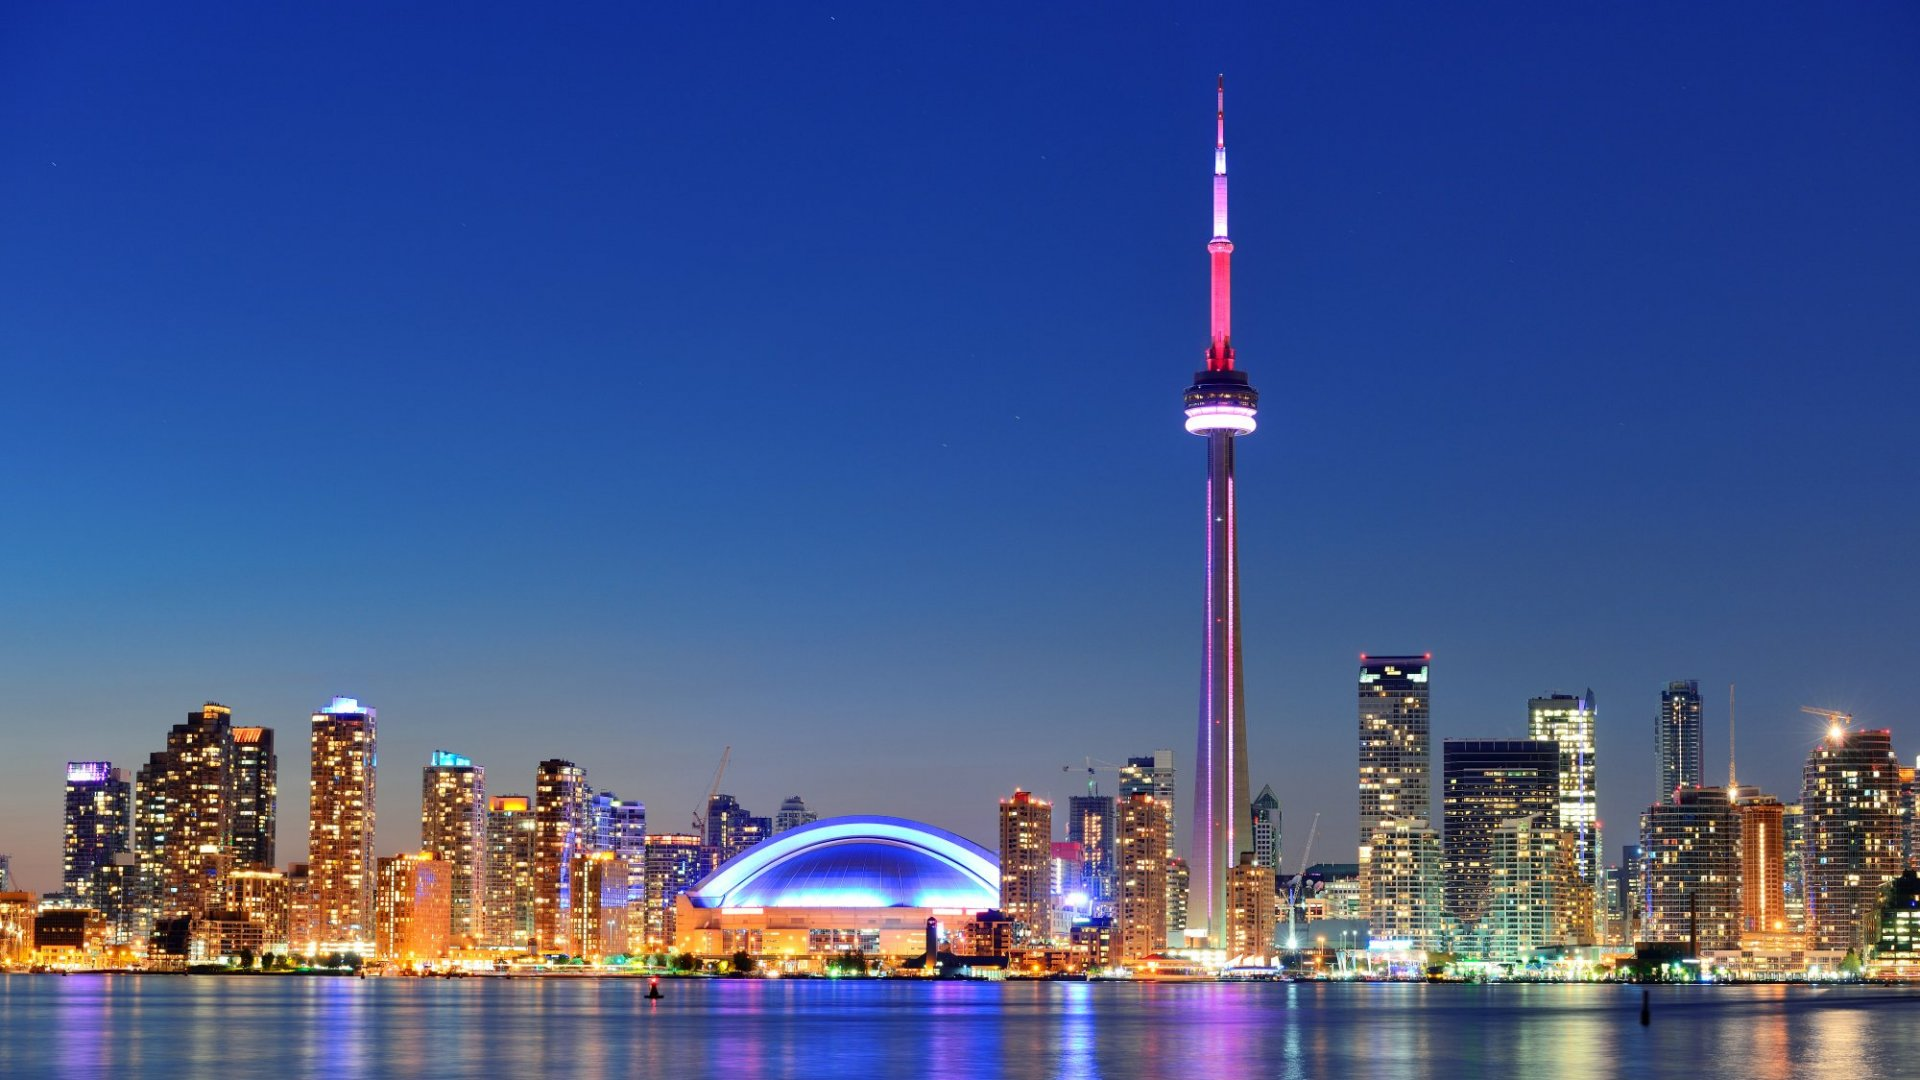 Eastern Canada: Exploring a Burgeoning Startup Ecosystem